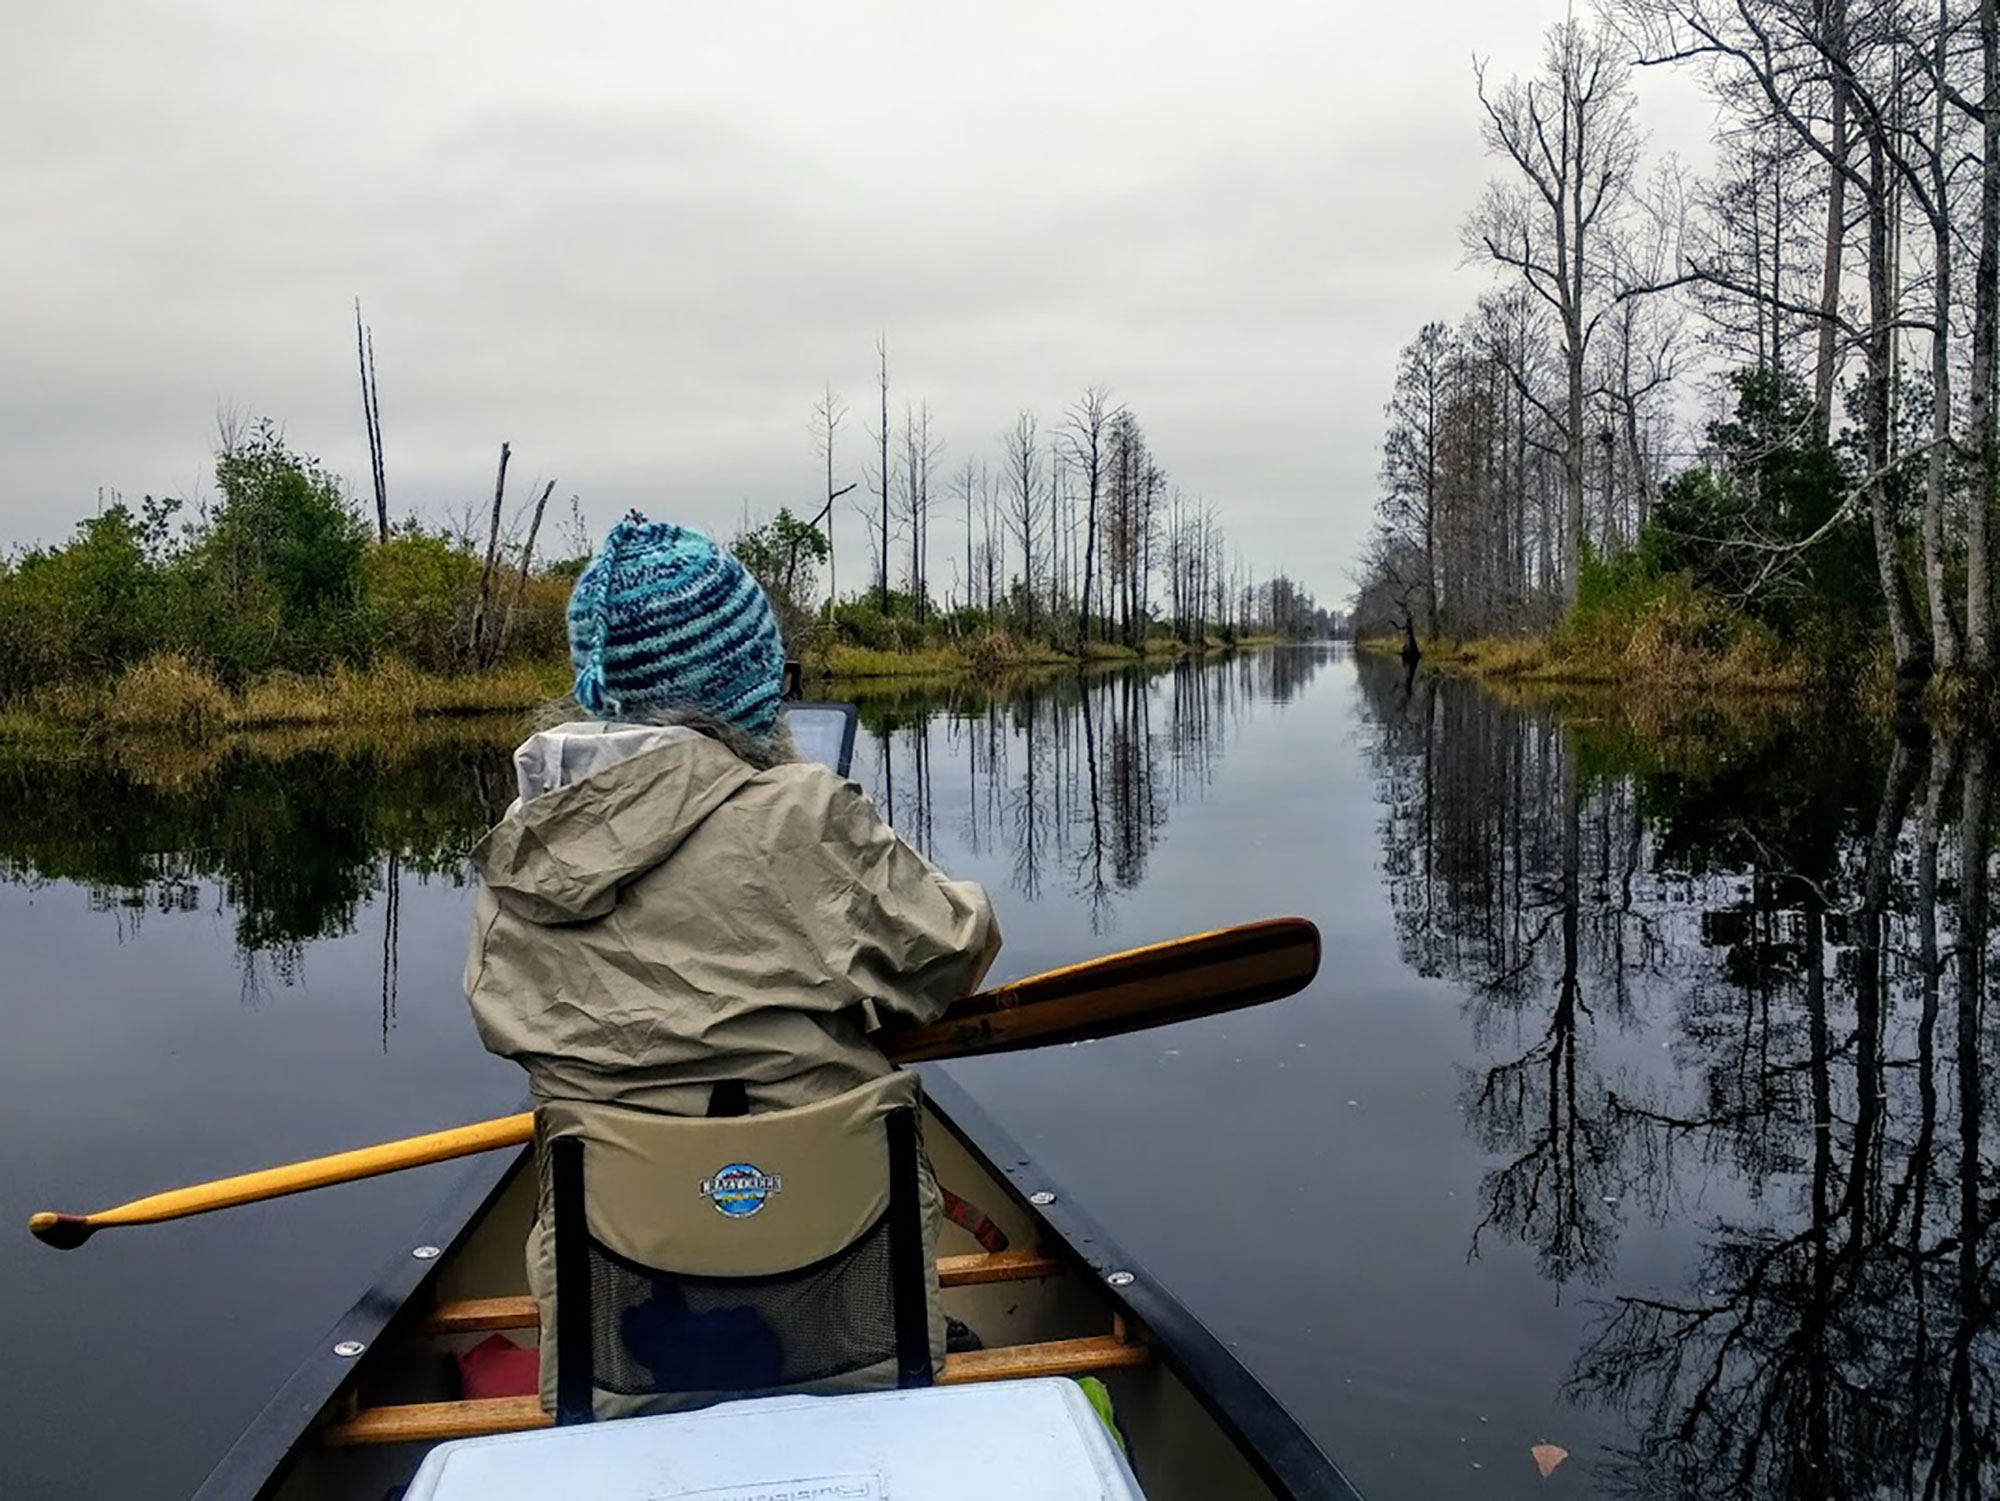 The Okefenokee Wilderness Area offers over 400,000 acres of wetlands and swamps to explore with seven overnight shelters. | Courtesy: Troy Allen Lair